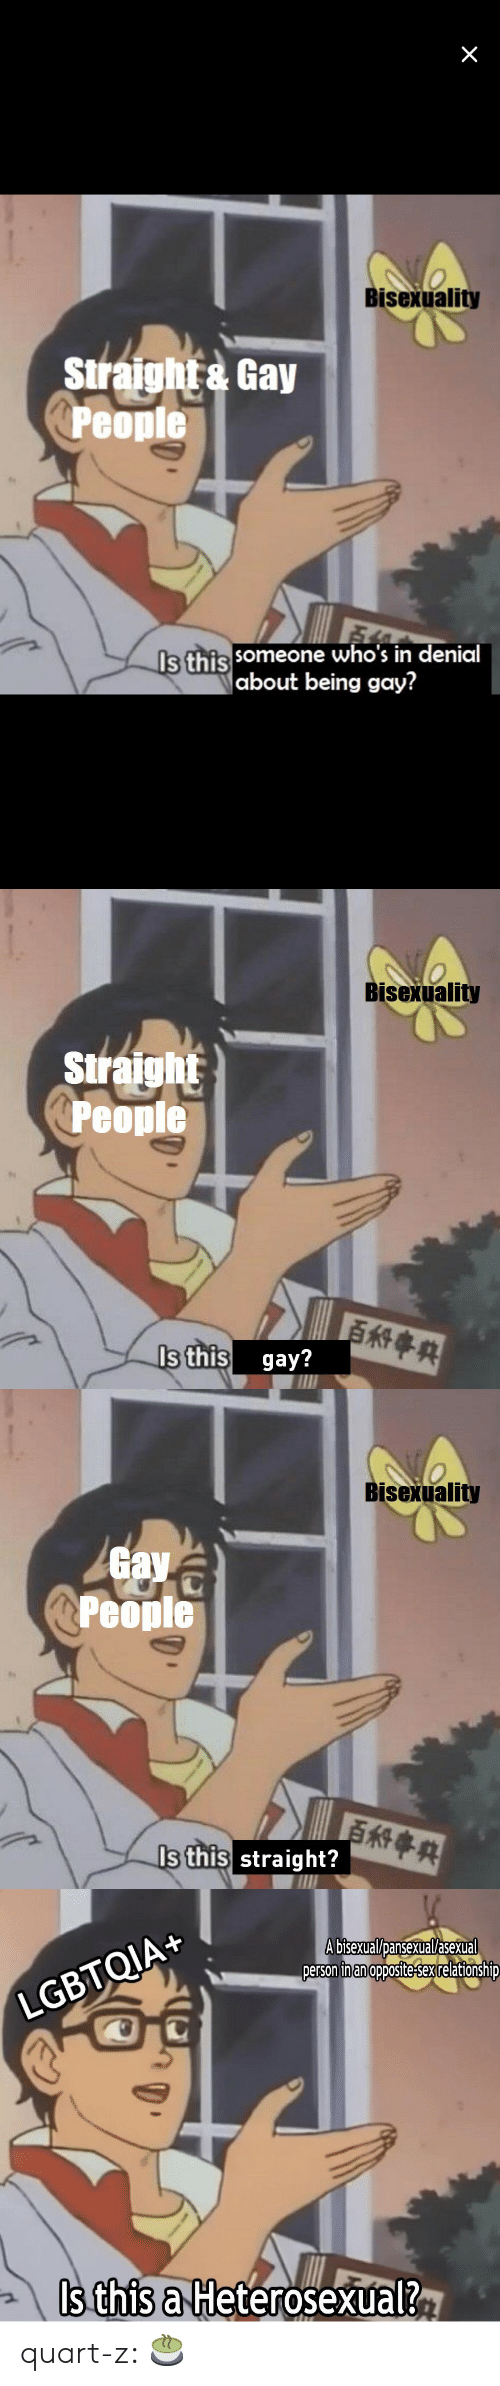 Bisexuality: Bisexuality  Siraht Gay  Peopie  Is this  someone who's in denial  about being gay?   Bisexuality  Siraight  People  s this gay?   Bisexuality  av  People  Is this straight?   LGBTQIA+  A bisexual/Dansexual/asexual  person inan opposite-sex relationshiD  Is this a Heterosexual? quart-z:  🍵